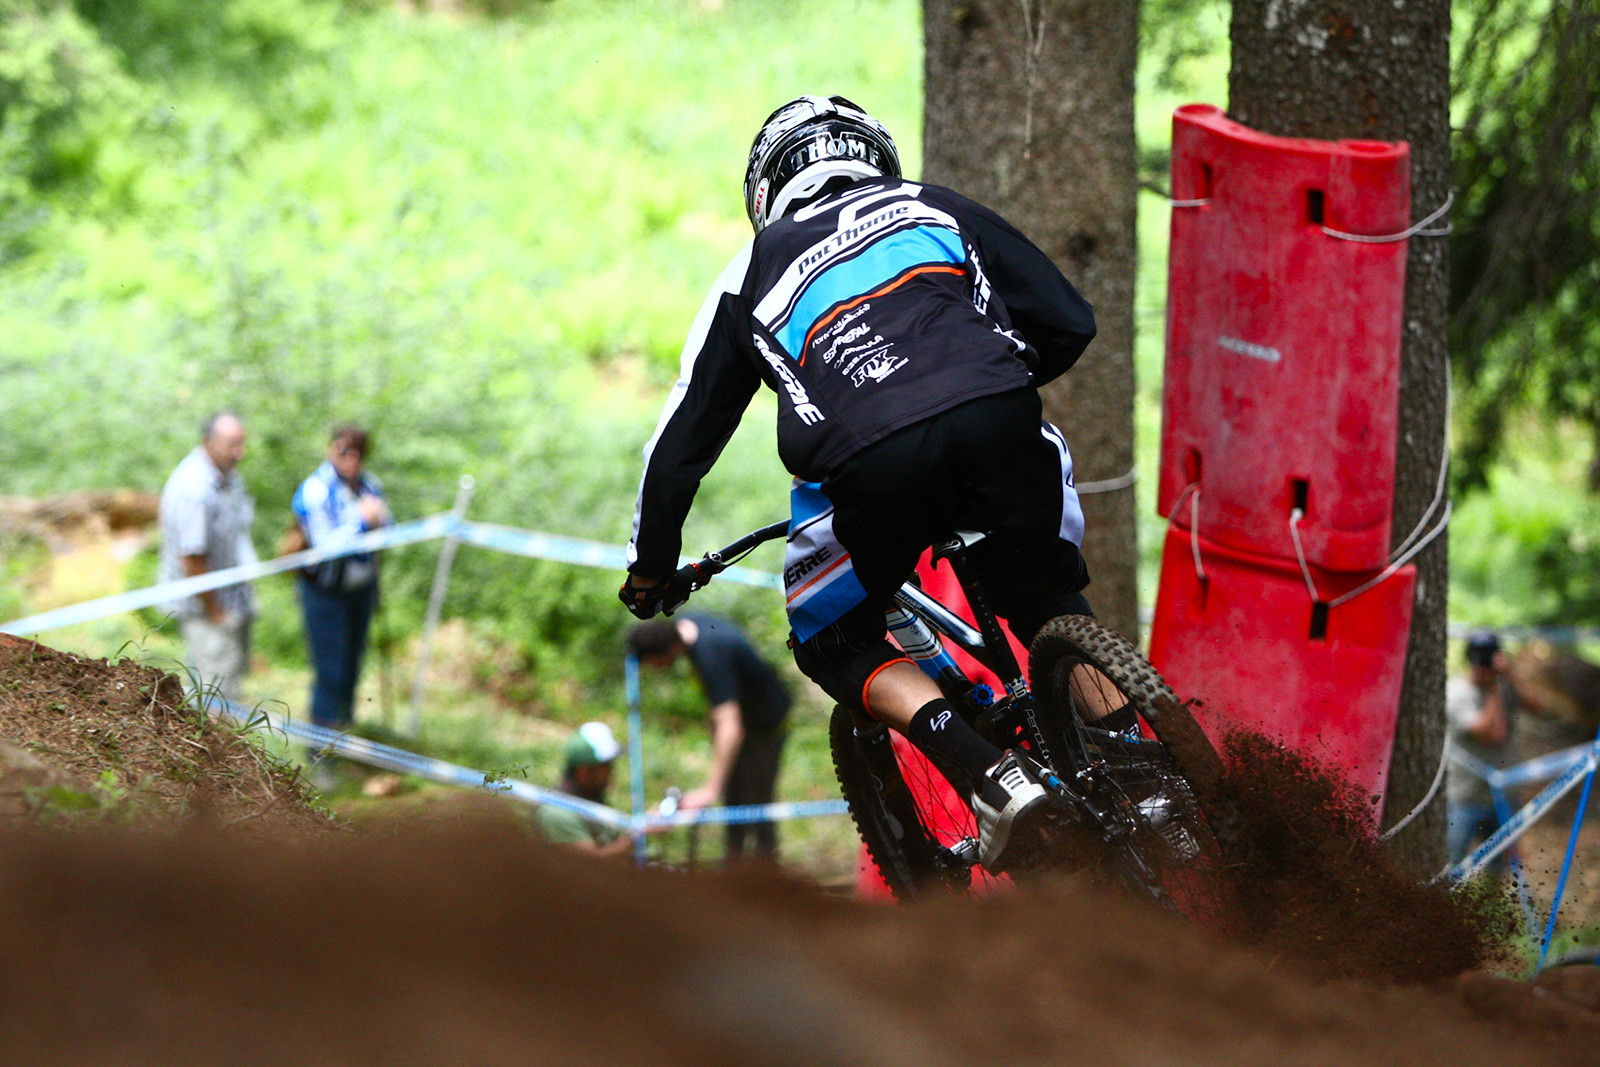 Patrick Thorne in the Loam at Val di Sole - 2012 UCI World Cup, Val di Sole Day 2 - Mountain Biking Pictures - Vital MTB